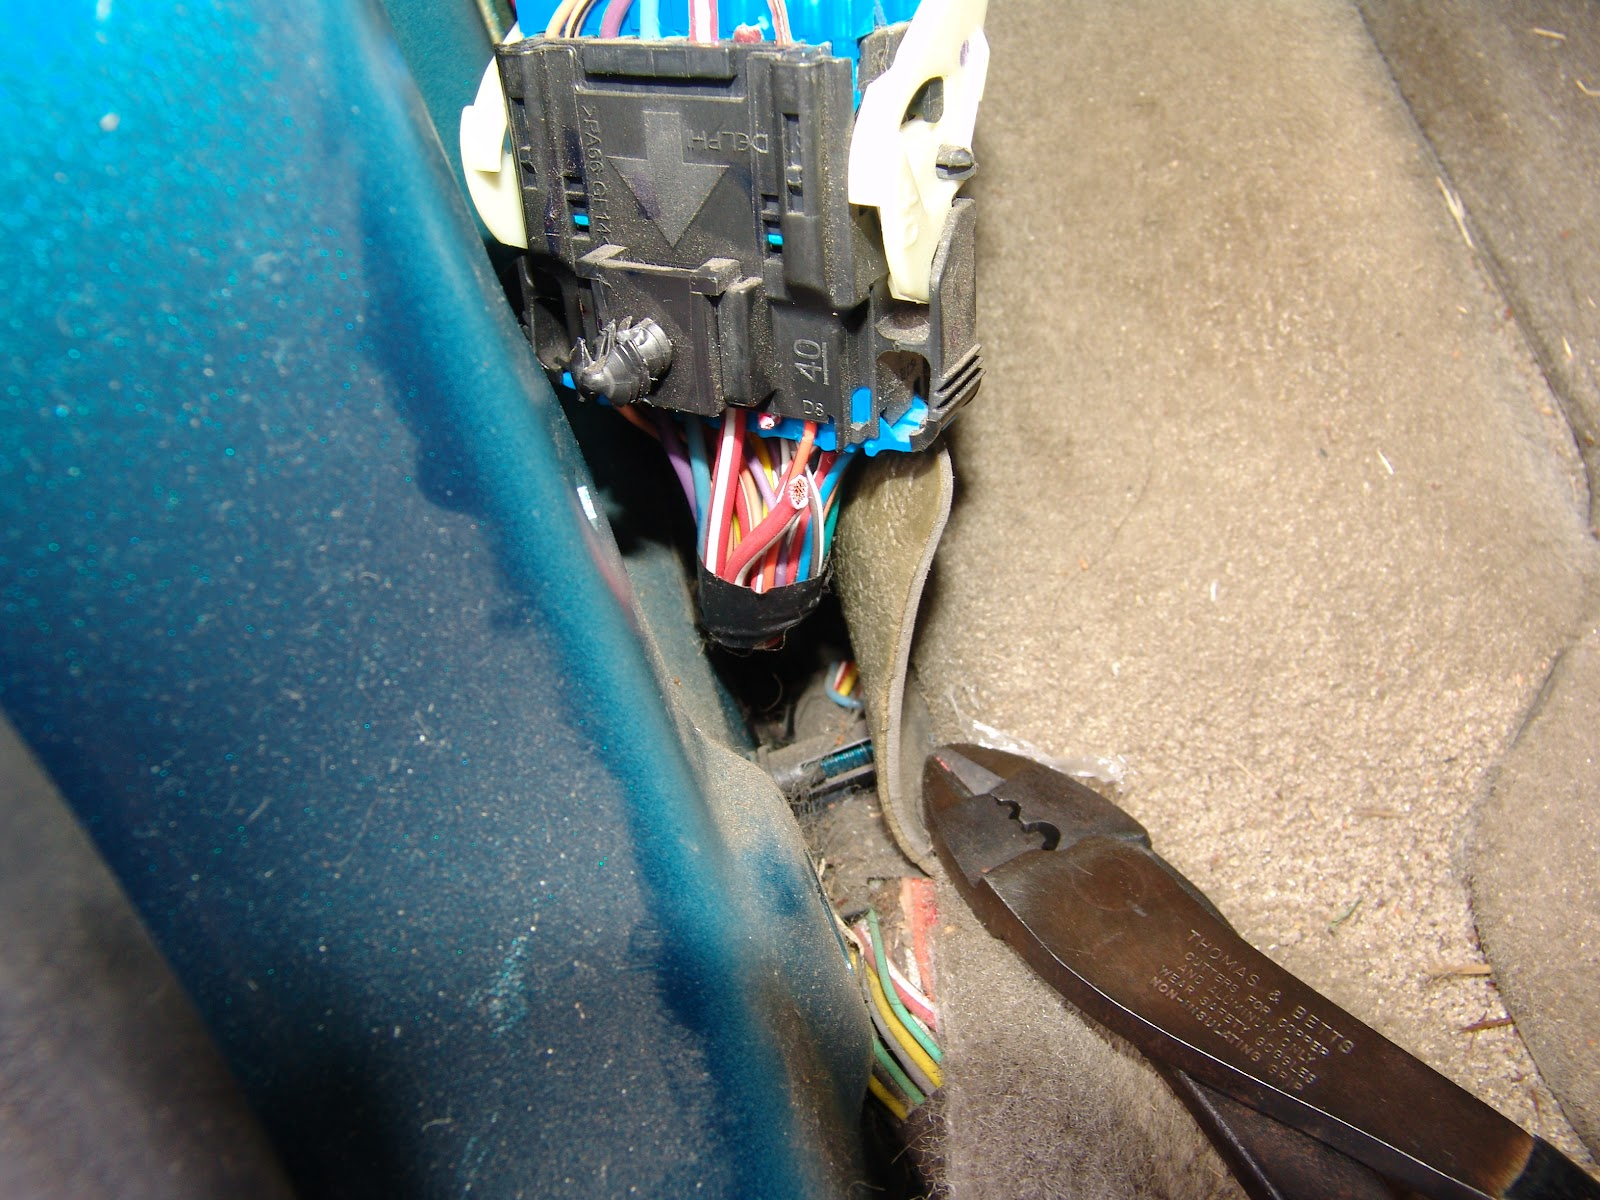 Hyundai Blower Motor Relay additionally Chevy Terrain Battery Location in addition Bmw Wiring Diagram For Headlights as well Chevrolet Wire Harness Clips additionally Blower Motor Resistor Equinox. on 2006 chevrolet equinox blower erratic